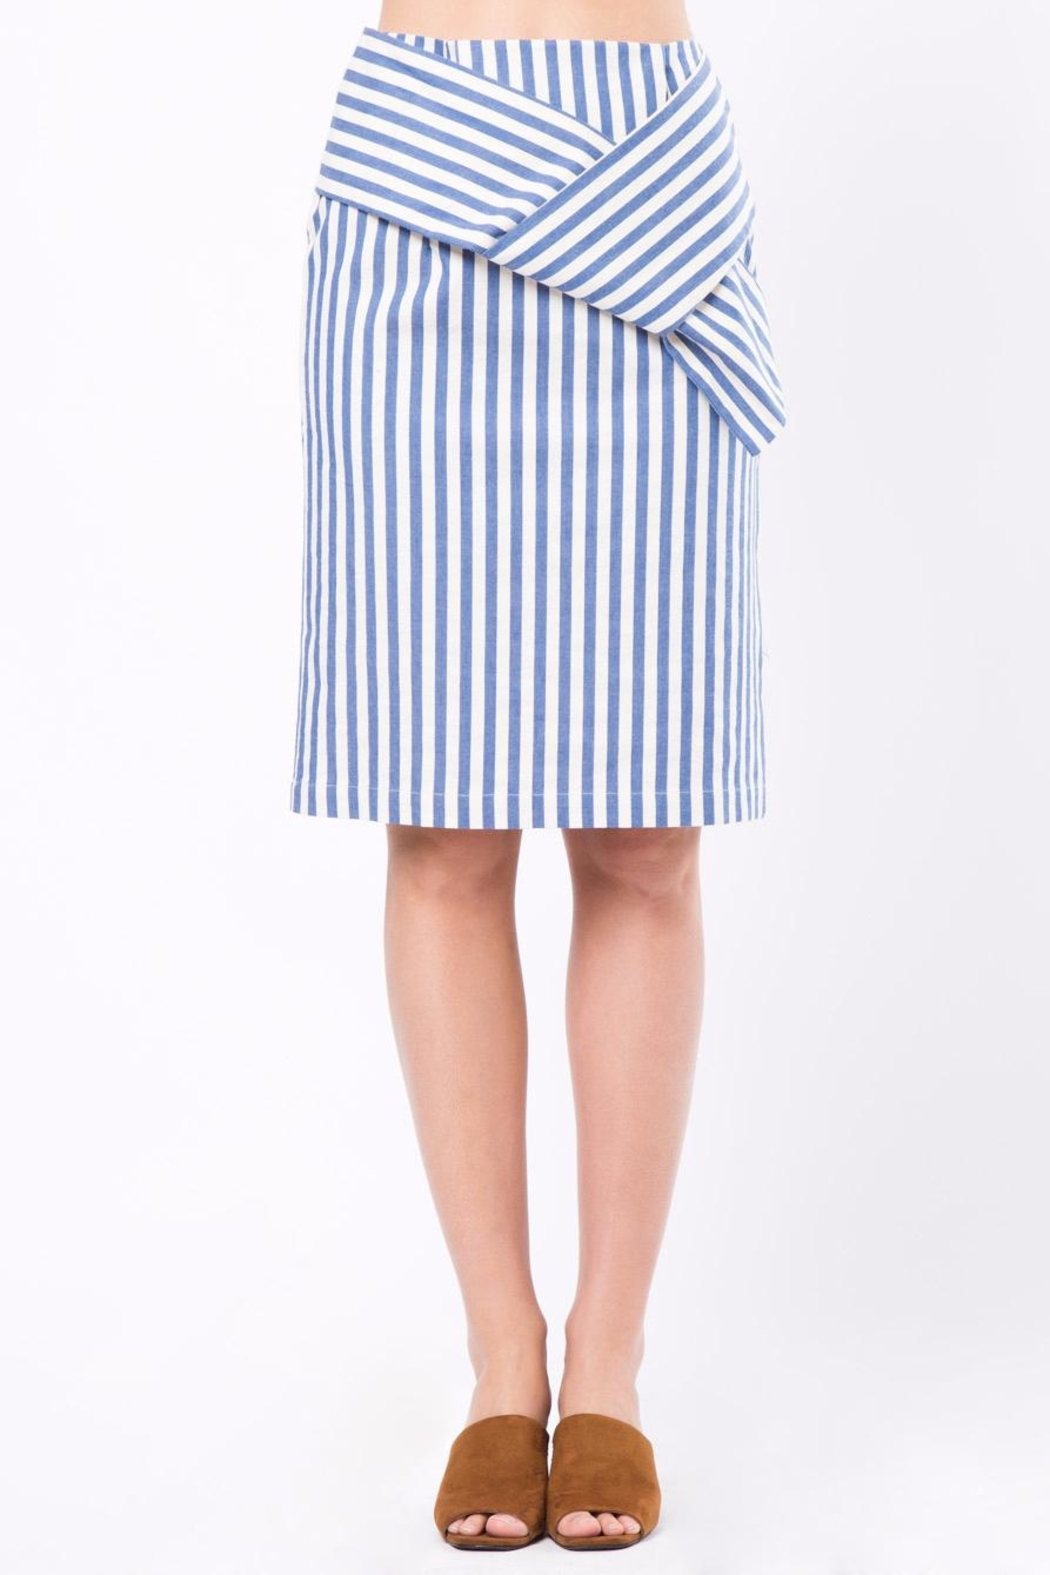 Movint Knot Midi Skirt - Main Image